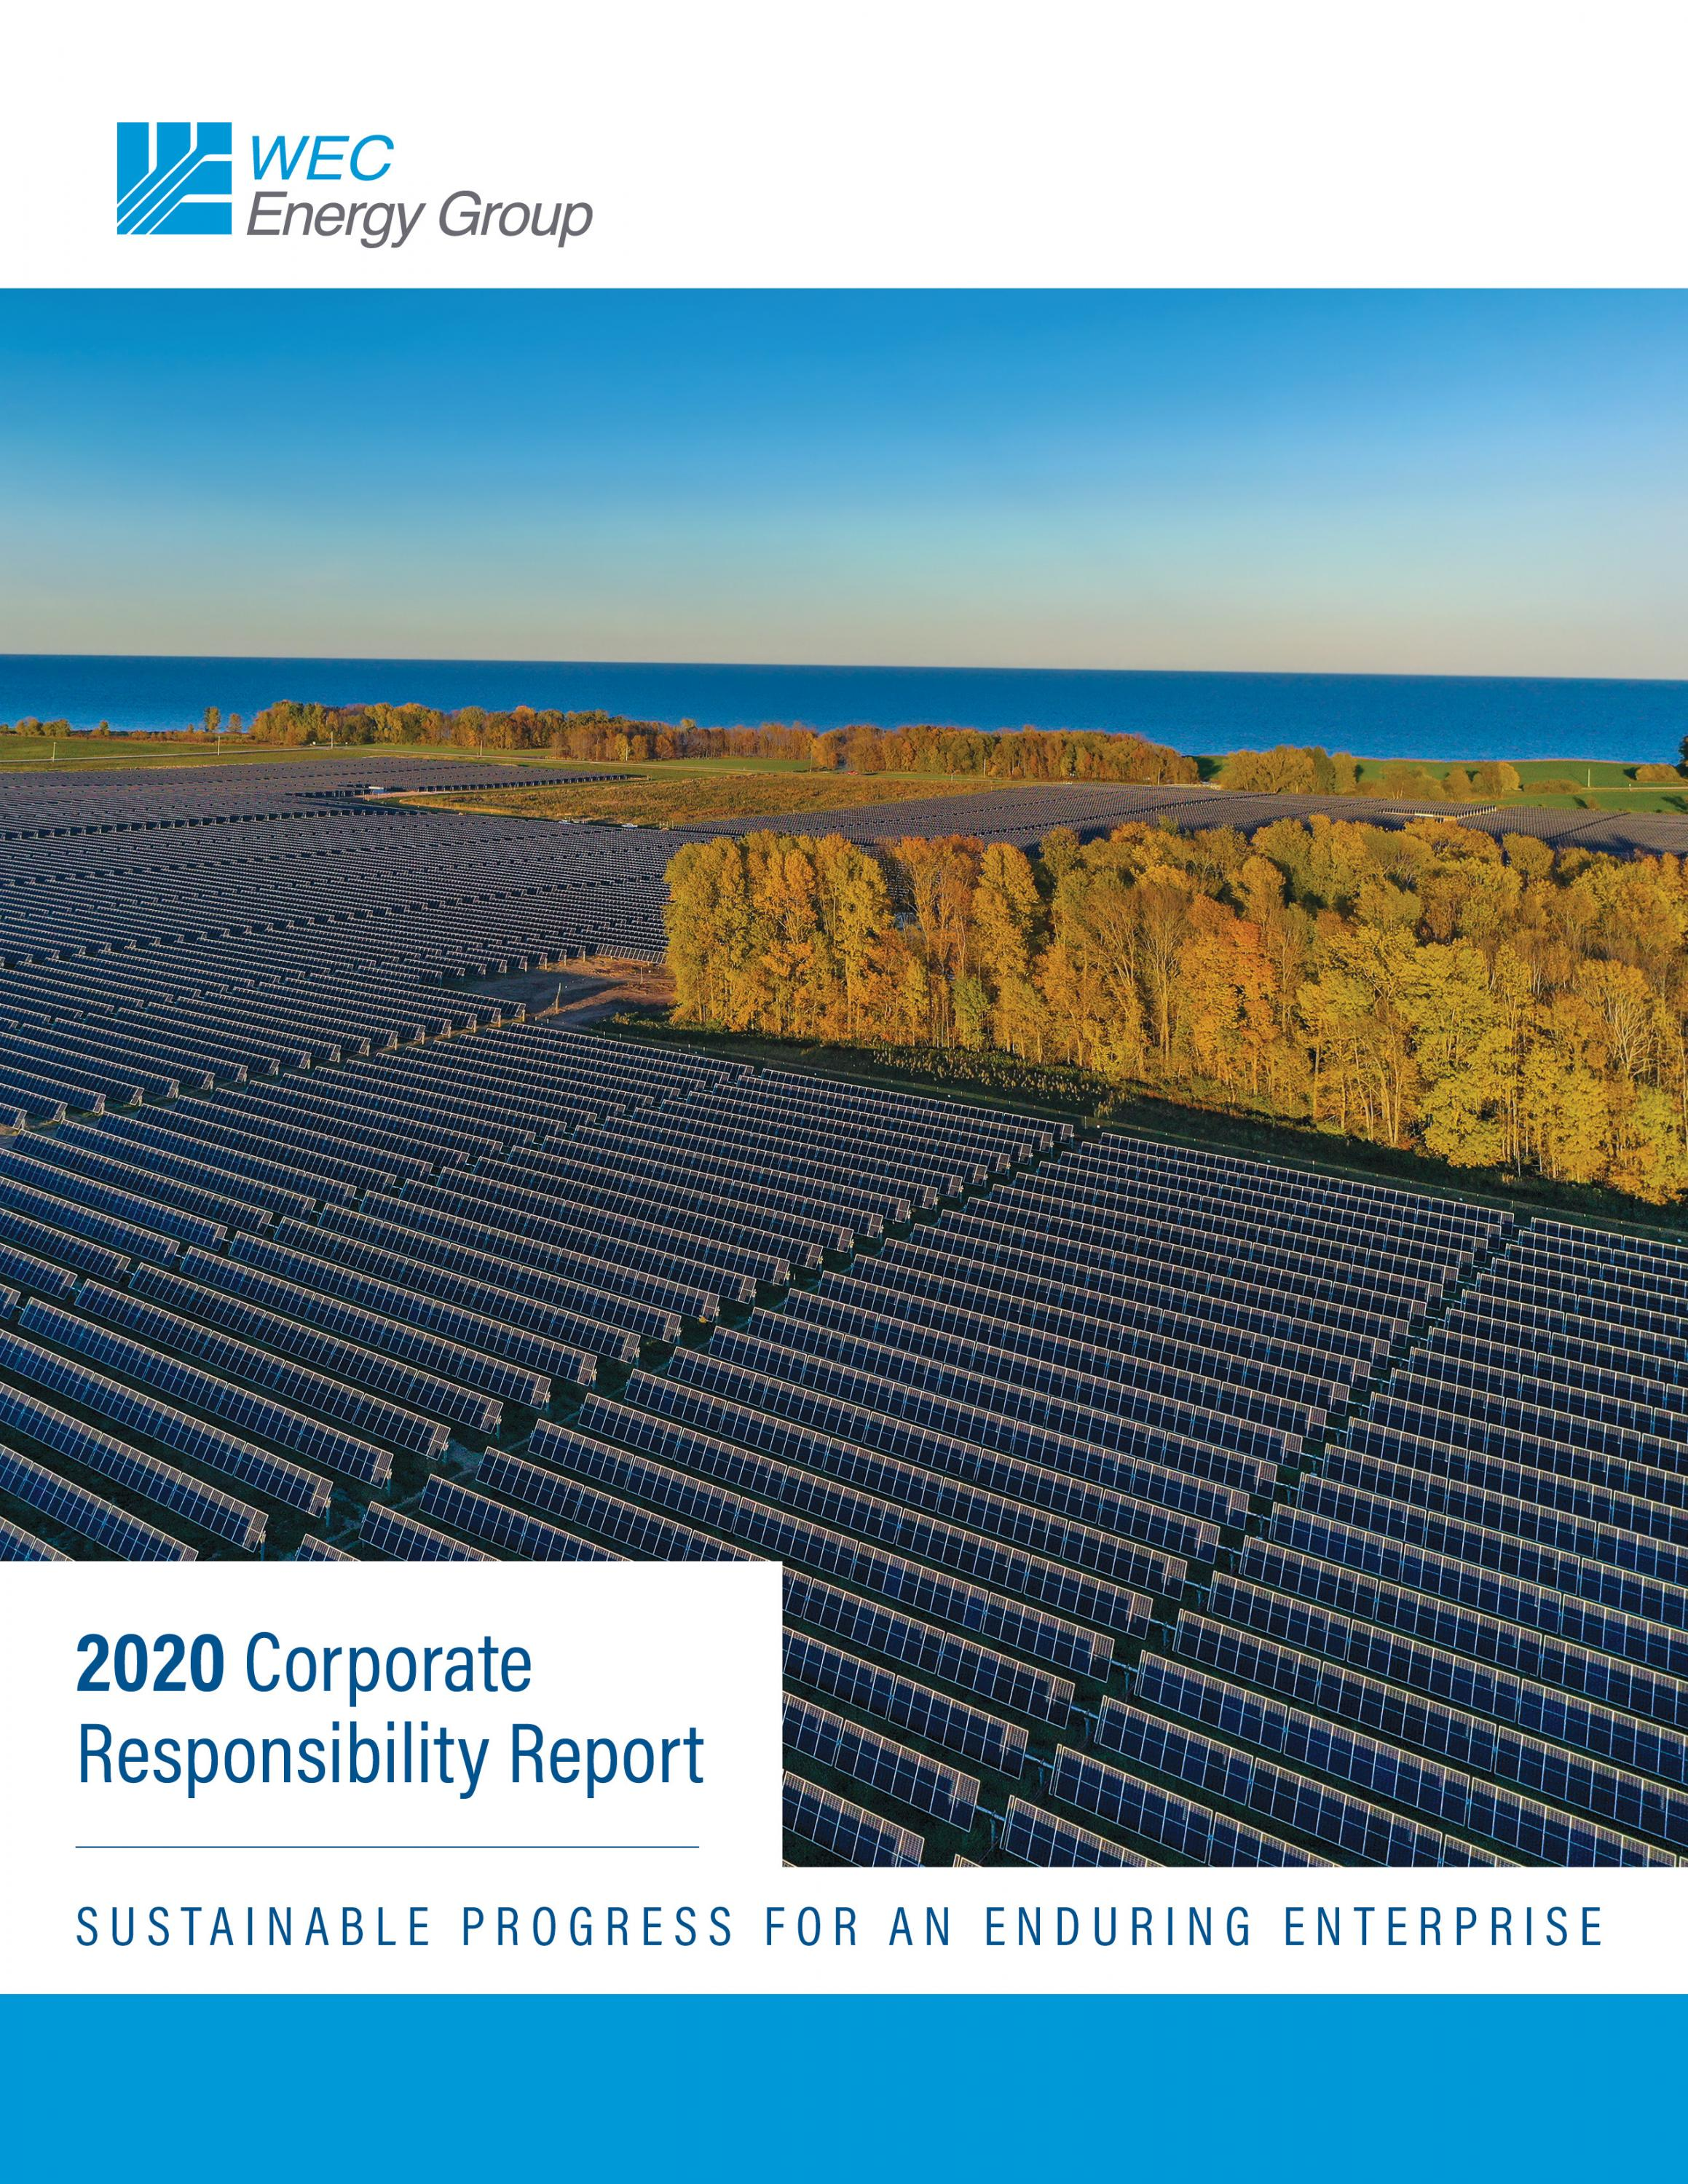 WEC Energy Group 2020 Report Cover (Solar field)